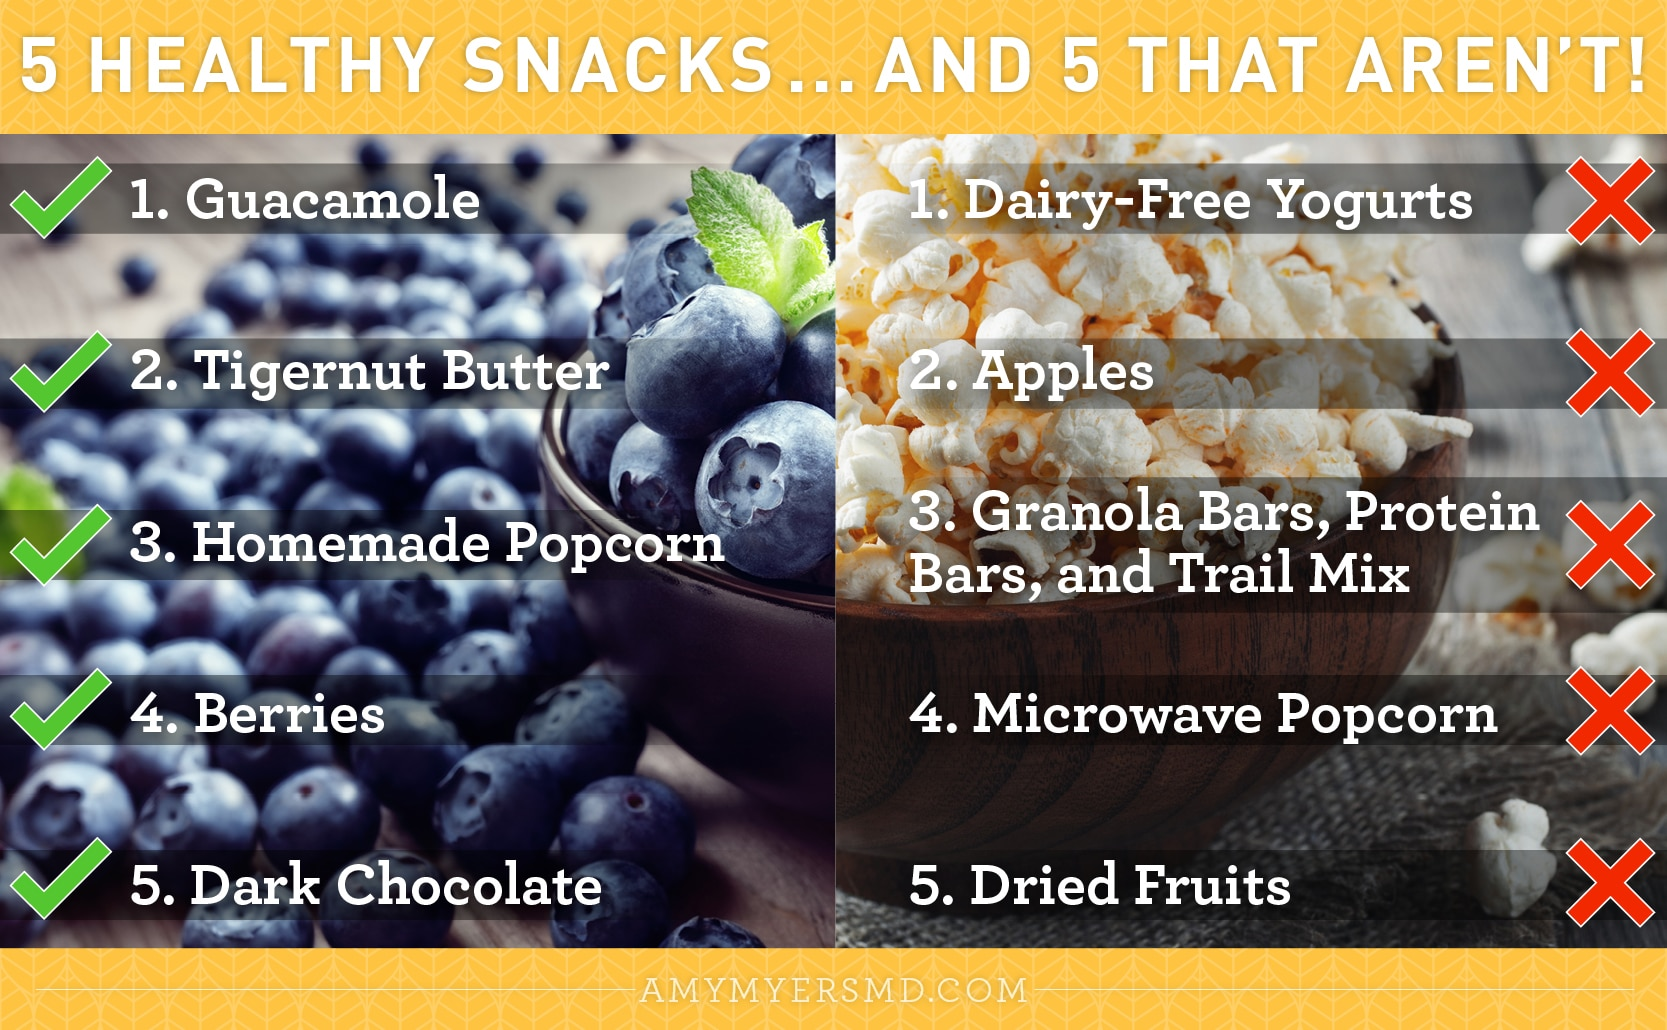 5 Quick Healthy Snacks to Enjoy - 5 that Aren't - Berries and Popcorn - Infographic - Amy Myers MD